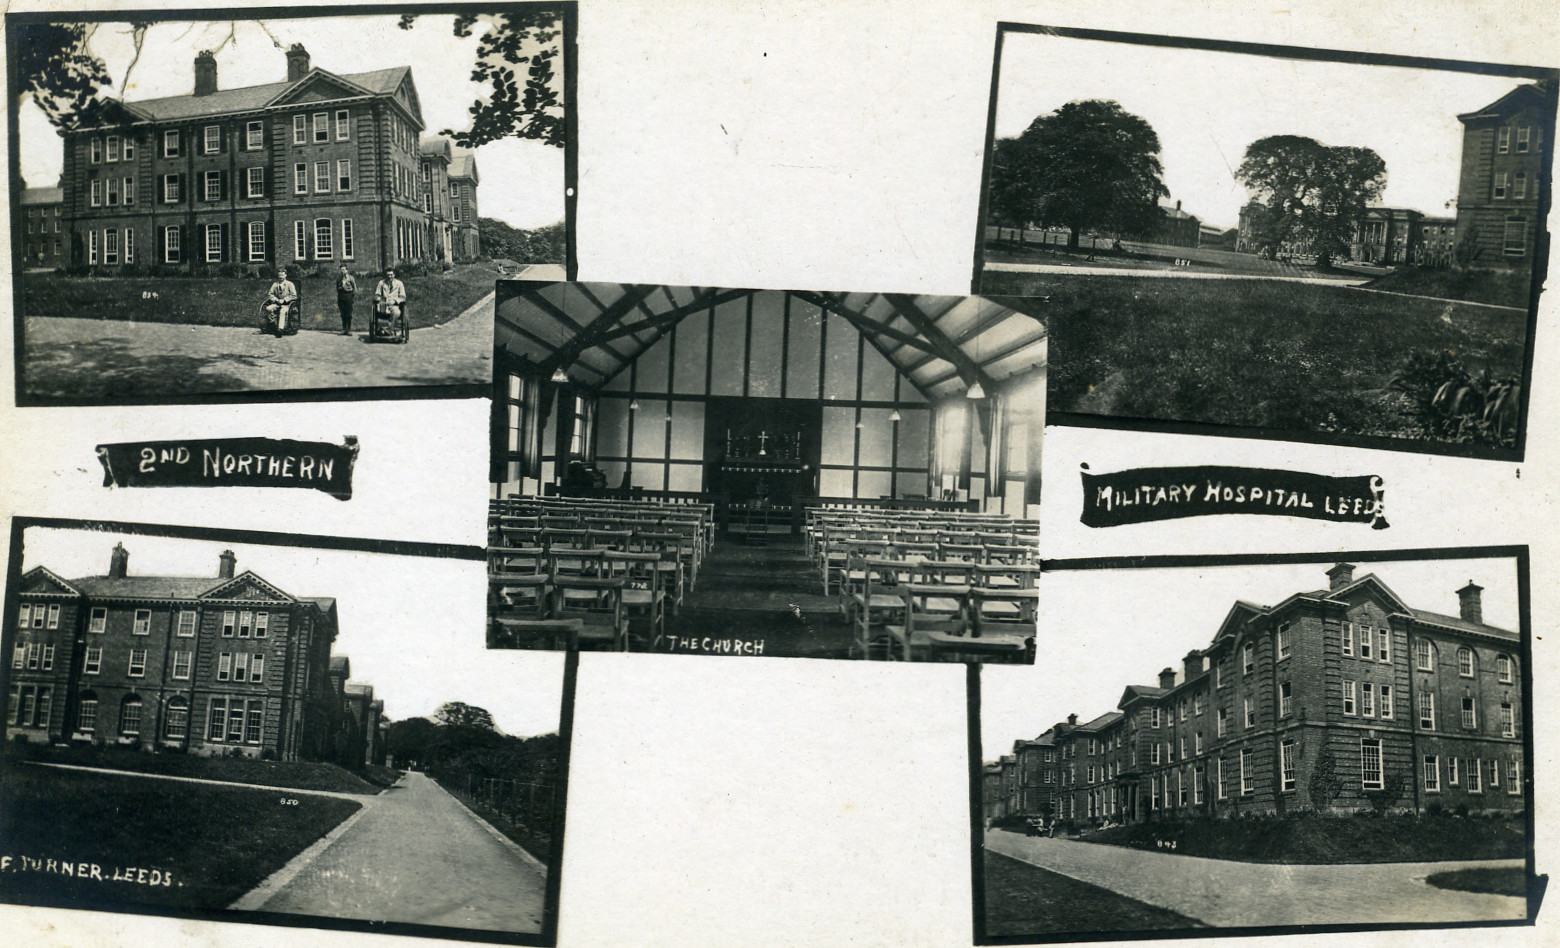 Postcard depicting Beckett Park military hospital